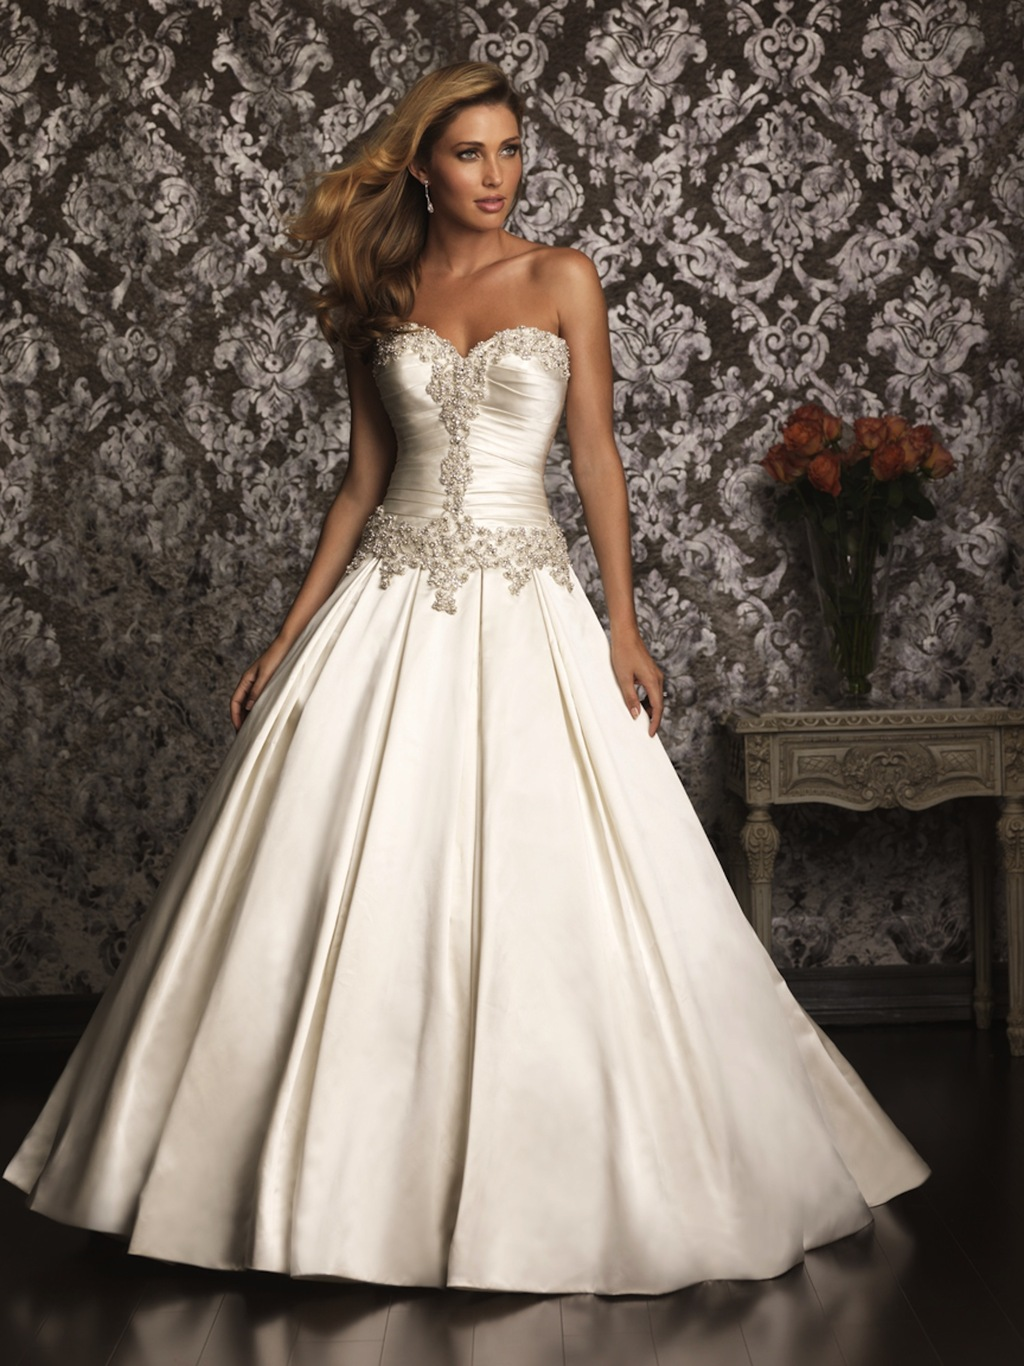 Allure-bridals-wedding-dress-bridal-gown-allure-collection-2013-9003-f.full